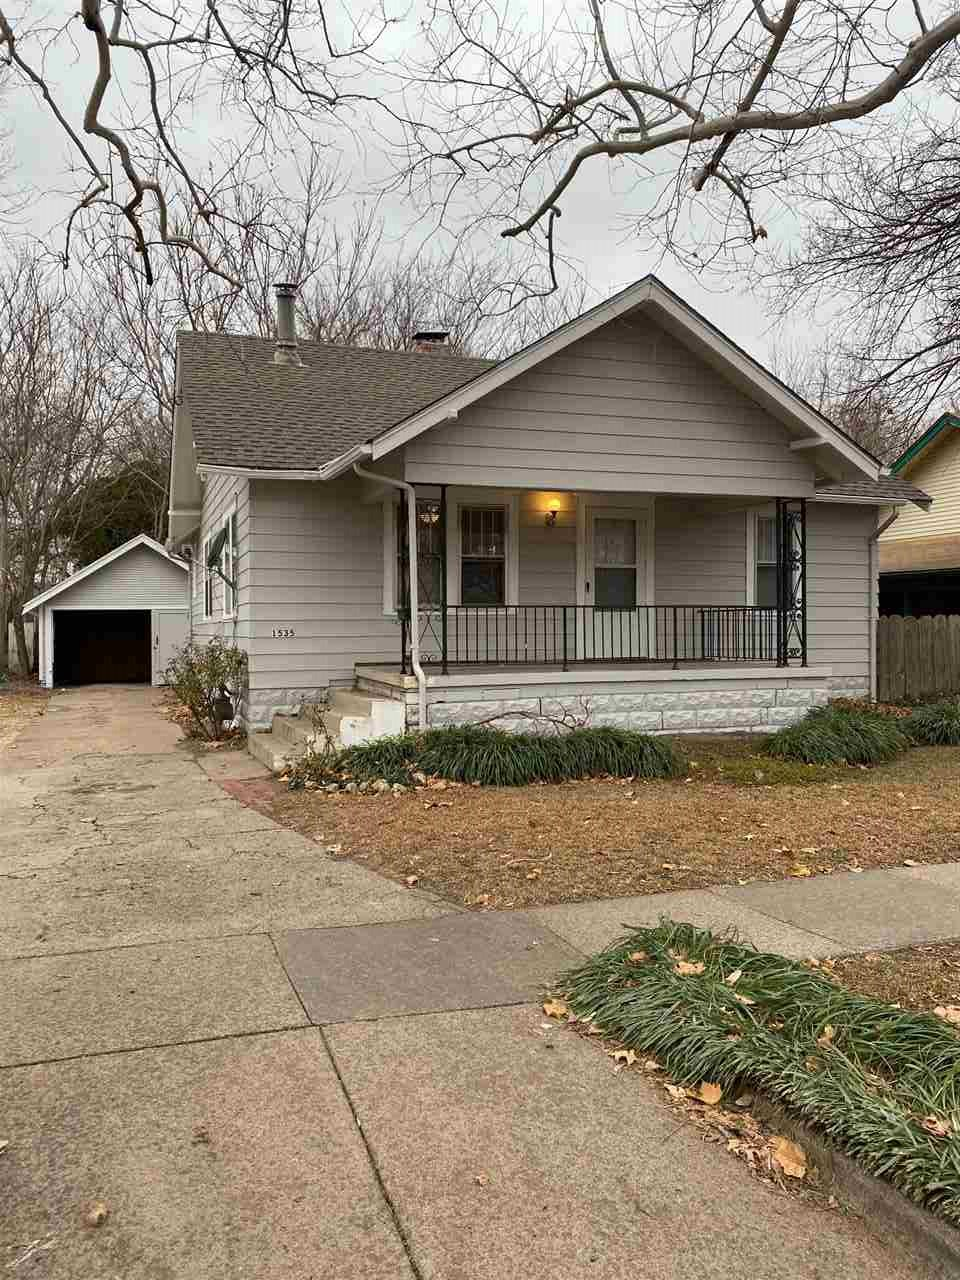 Beautiful newly updated ranch style home in the heart of North Riverside Wichita neighborhood. This